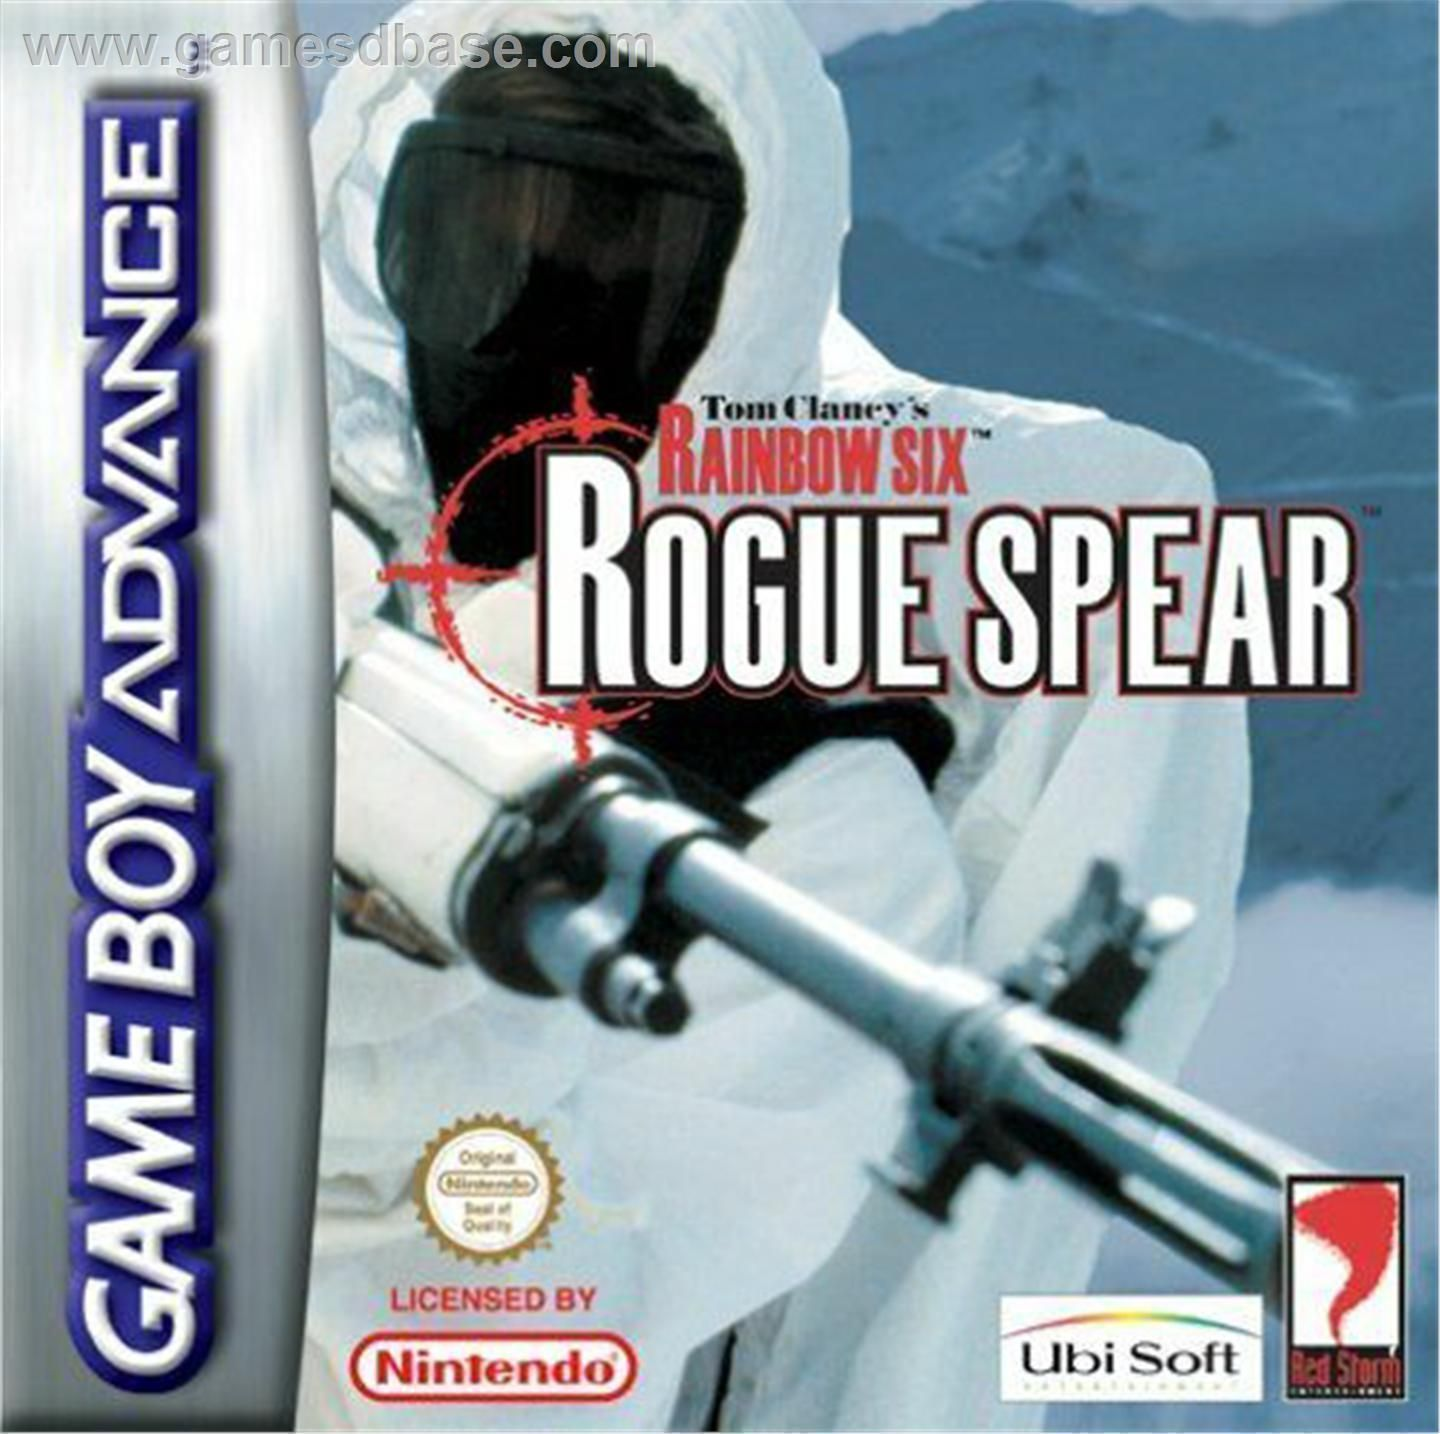 Rainbow Six - Rogue Spear